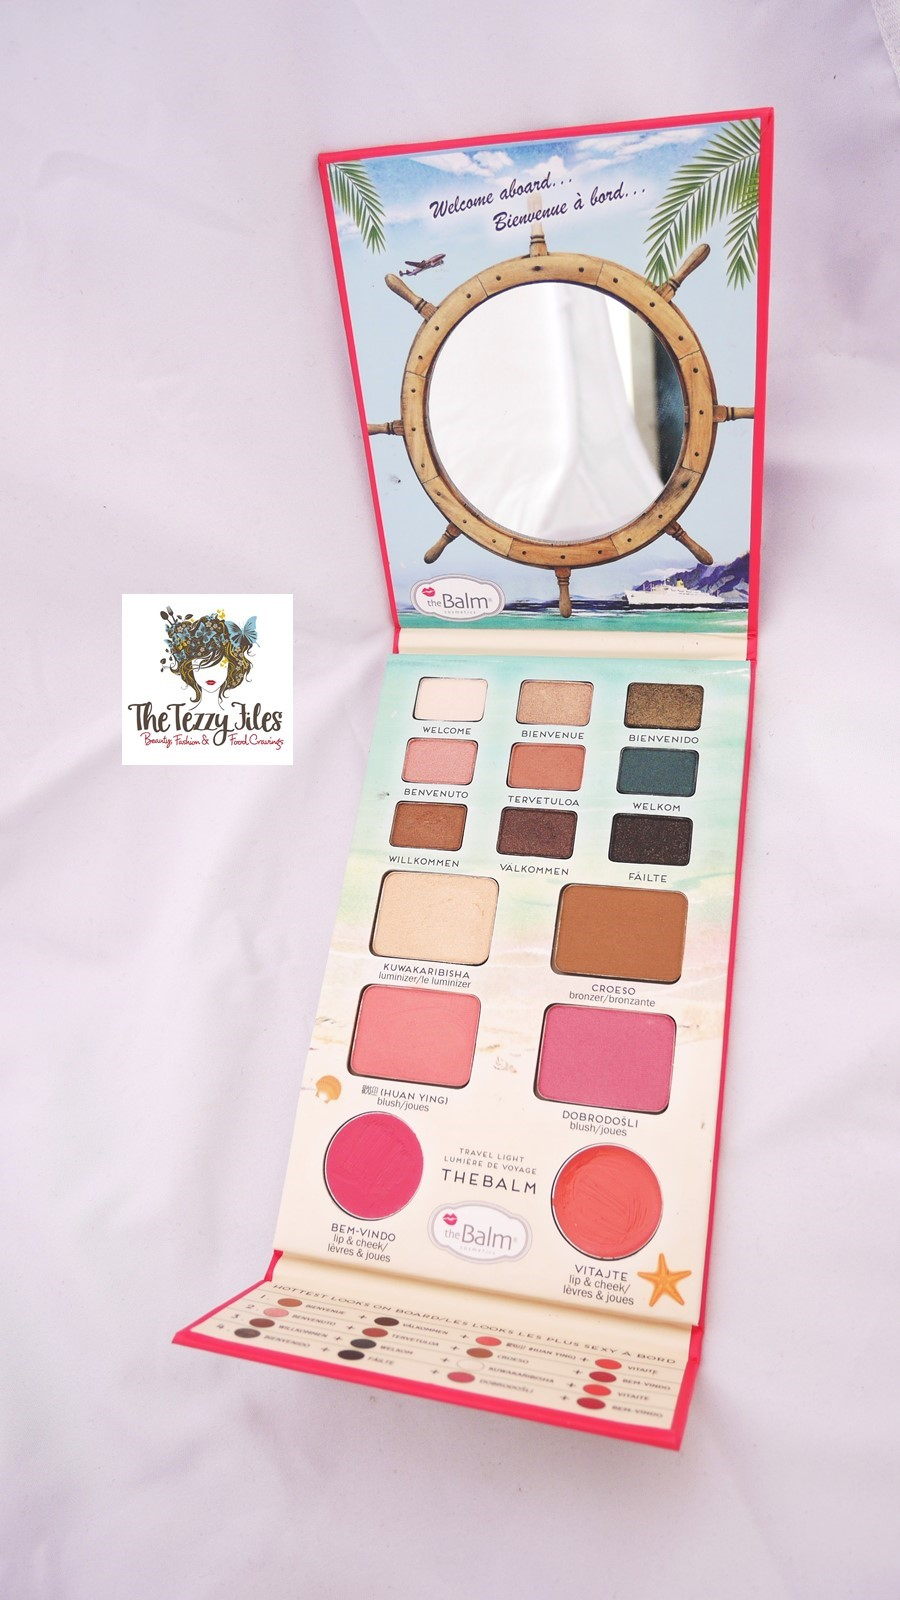 The Balm Voyage palatte makeup for travel review by The Tezzy Files Dubai Beauty Makeup Blog Blogger UAE (7)